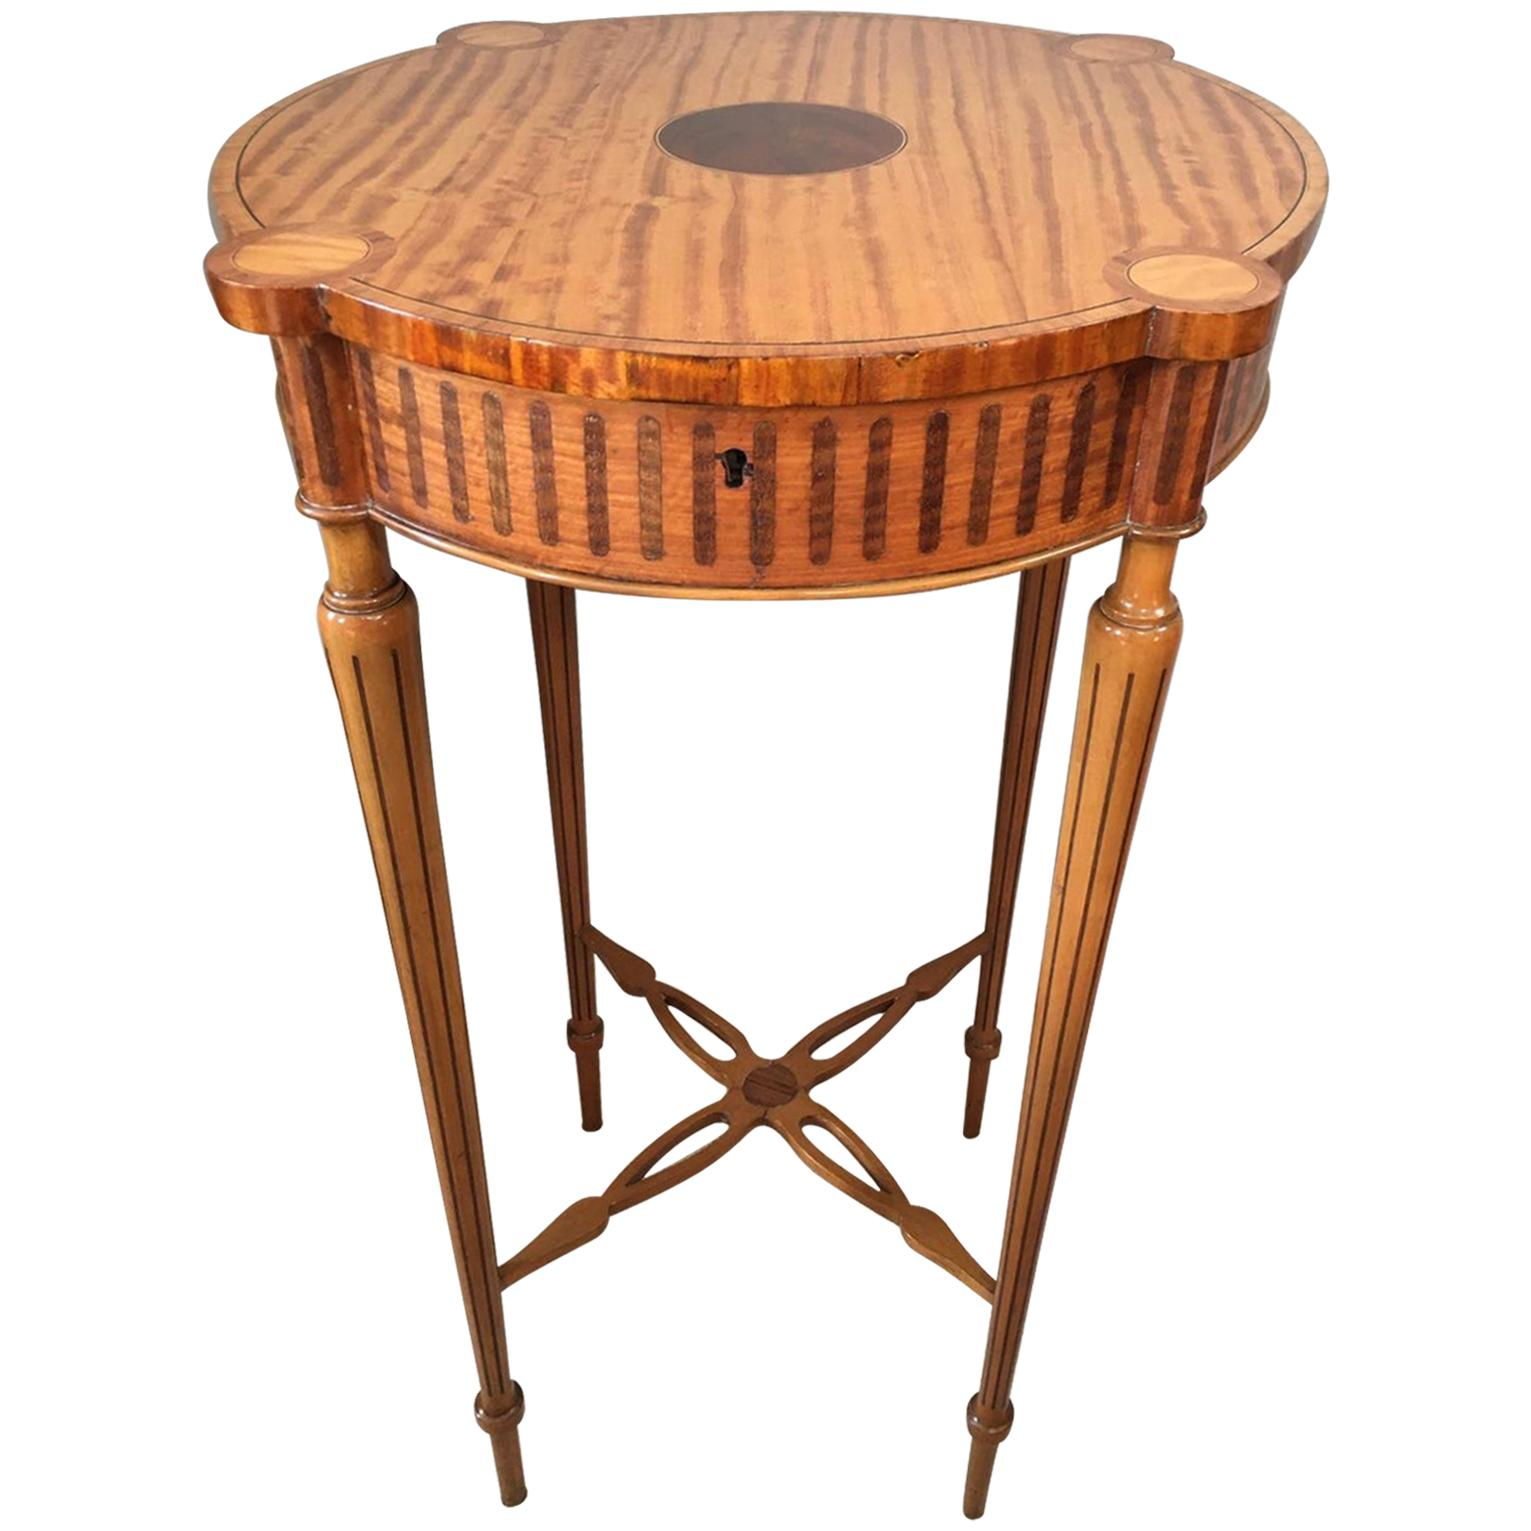 Fine Quality Antique 19th Century Inlaid Satinwood Centre Table